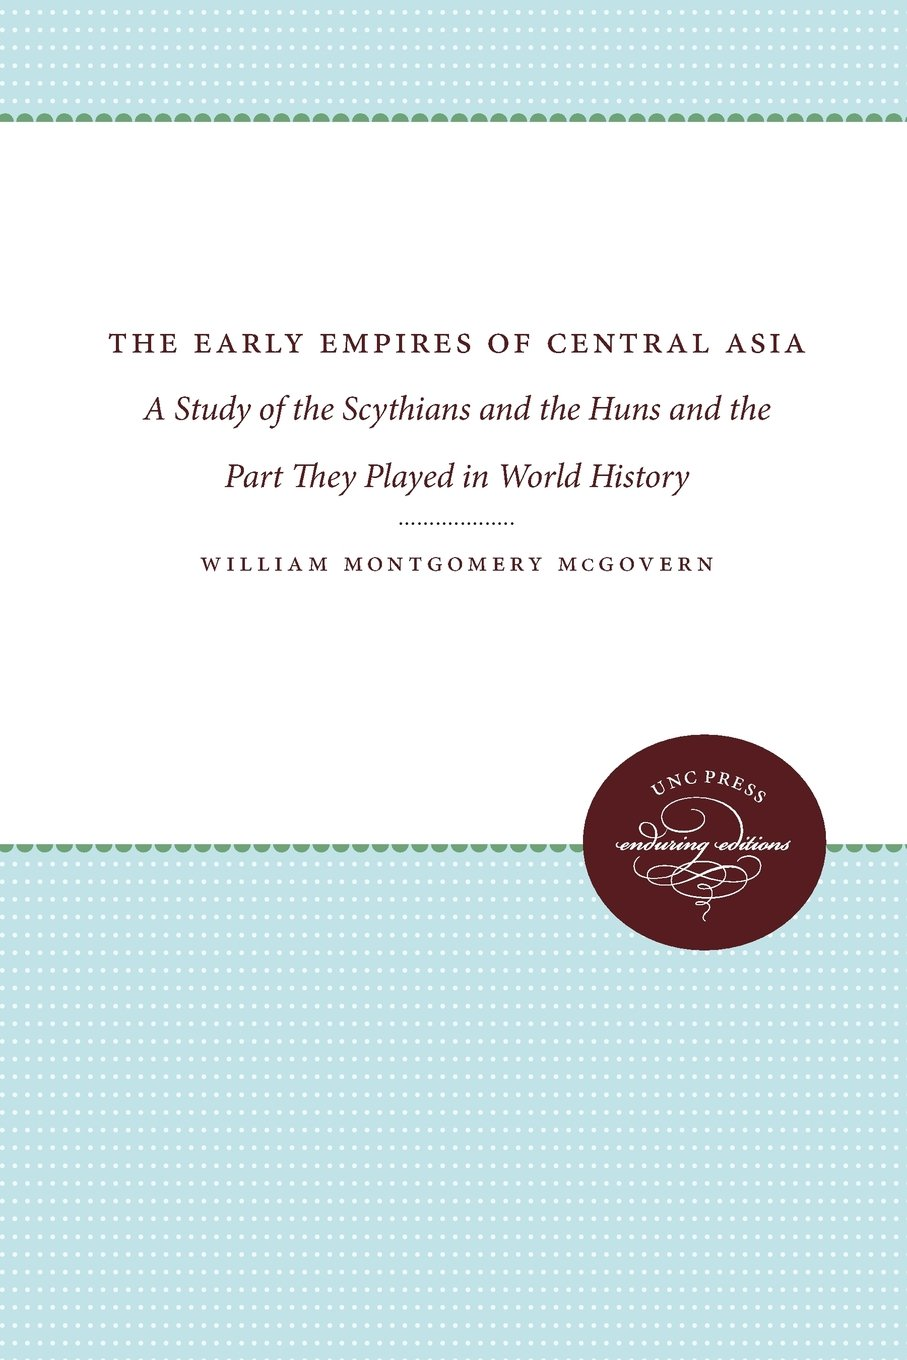 Download The Early Empires of Central Asia ebook